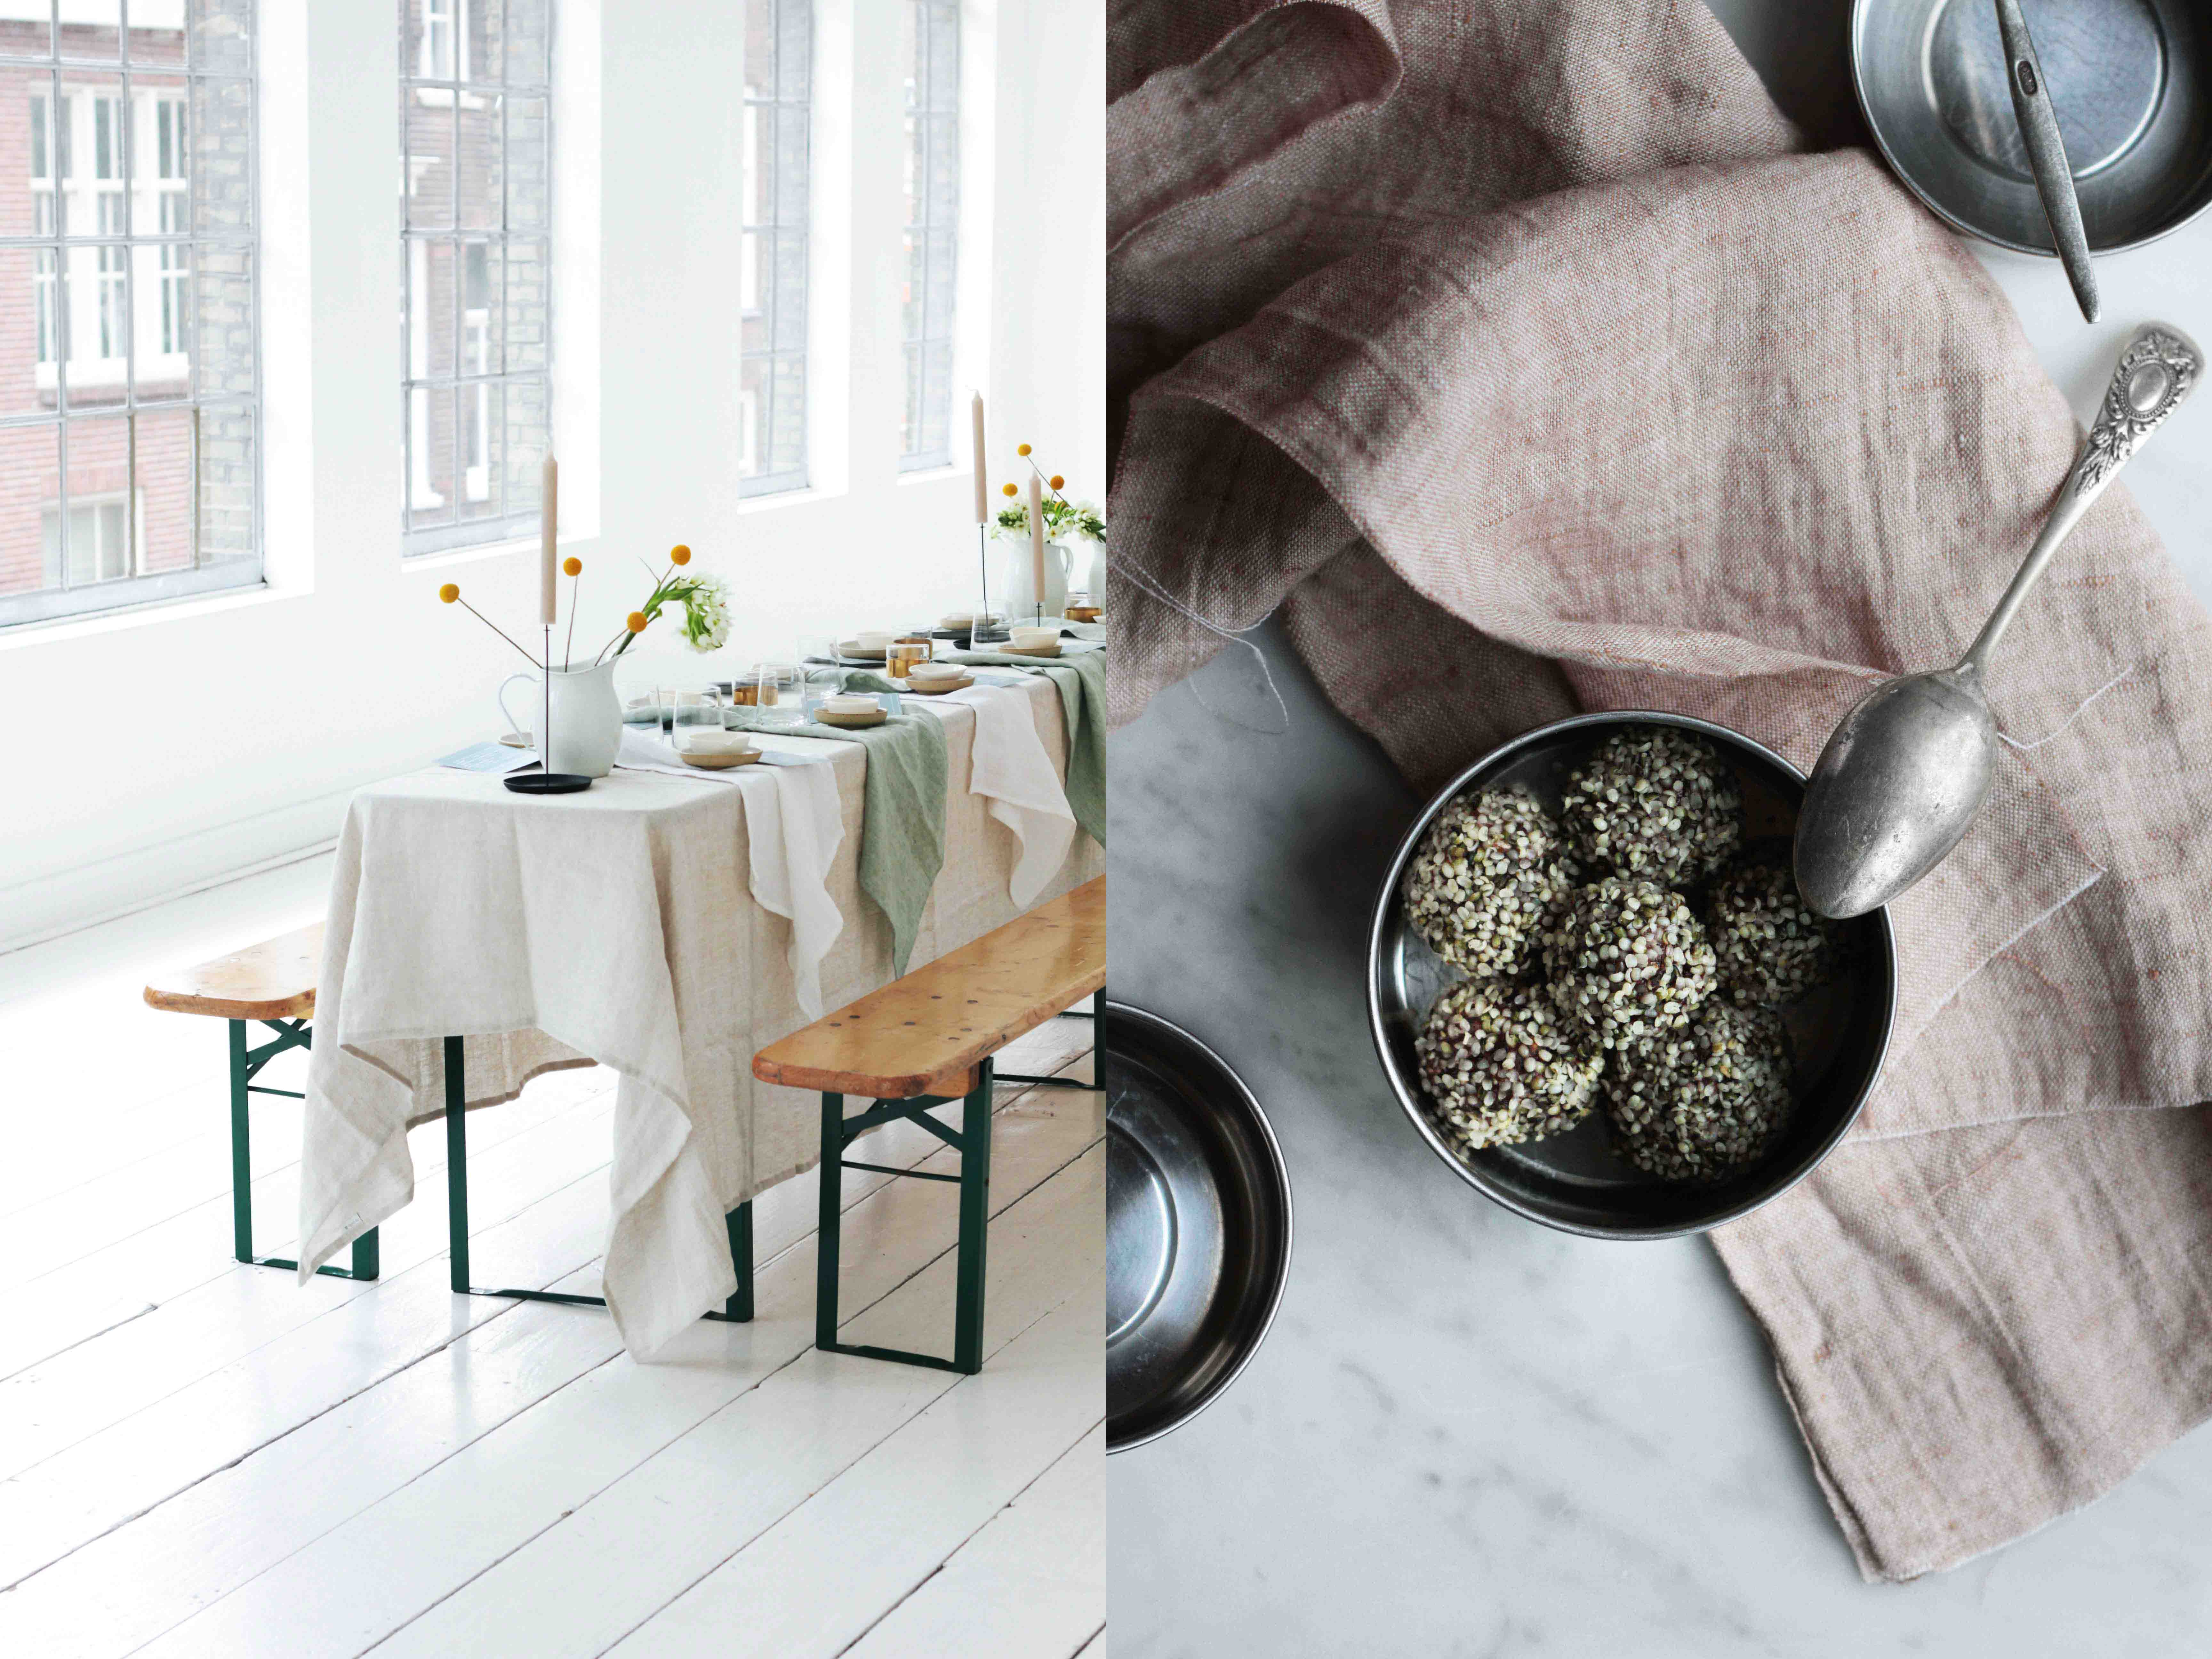 styling tablesetting vegan cookbook healthy sweets